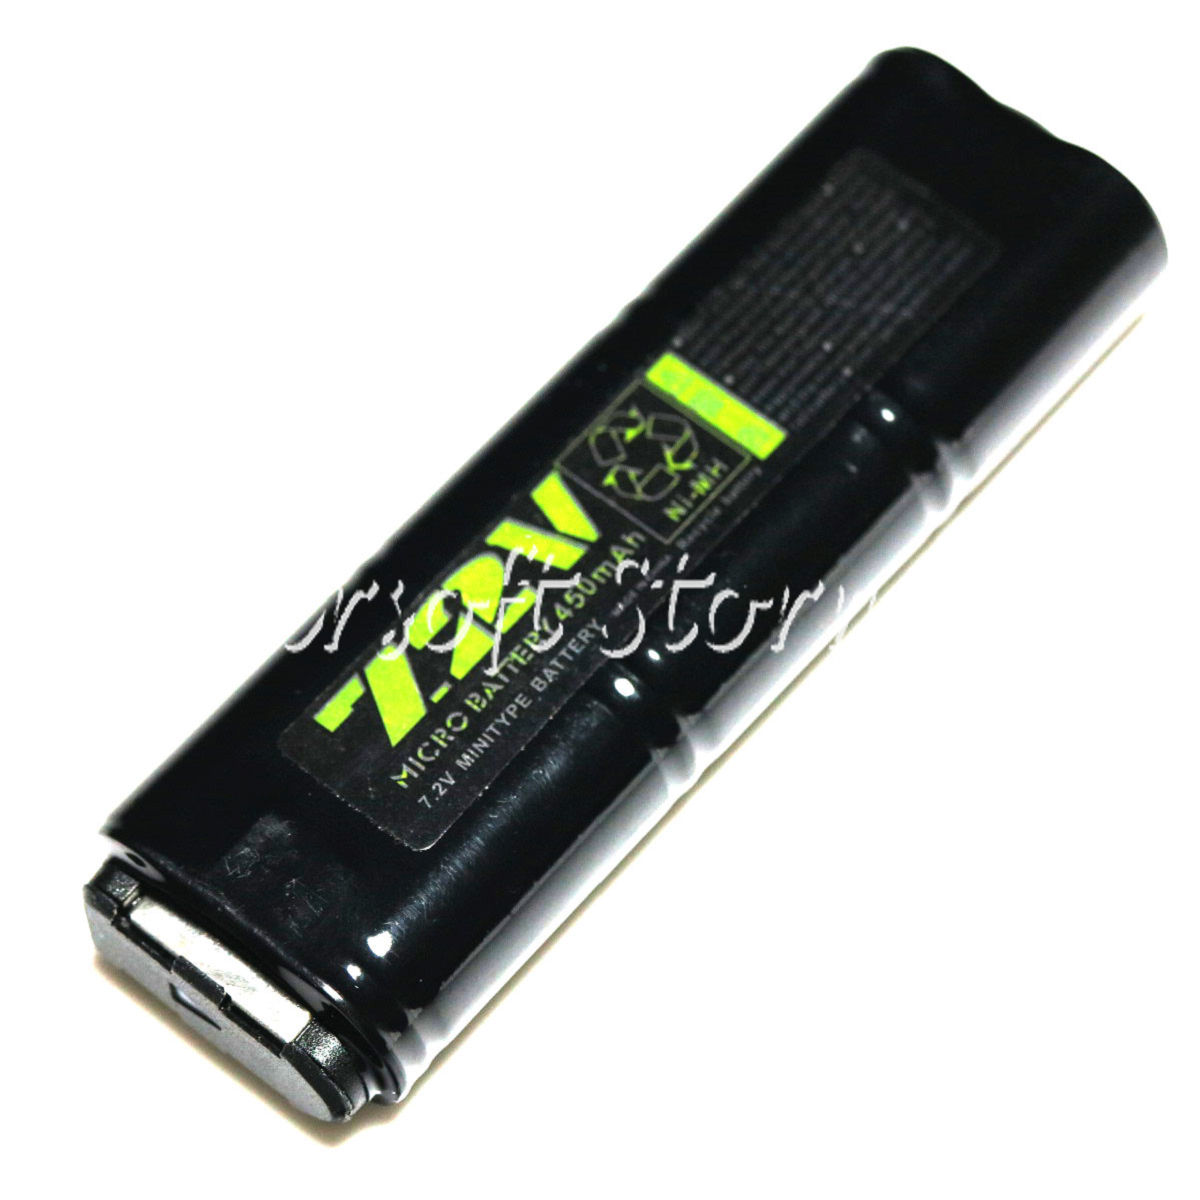 WELL 7.2V 450mAh Ni-MH Battery for Vz61/MP7/MAC10/R2/R4 AEG